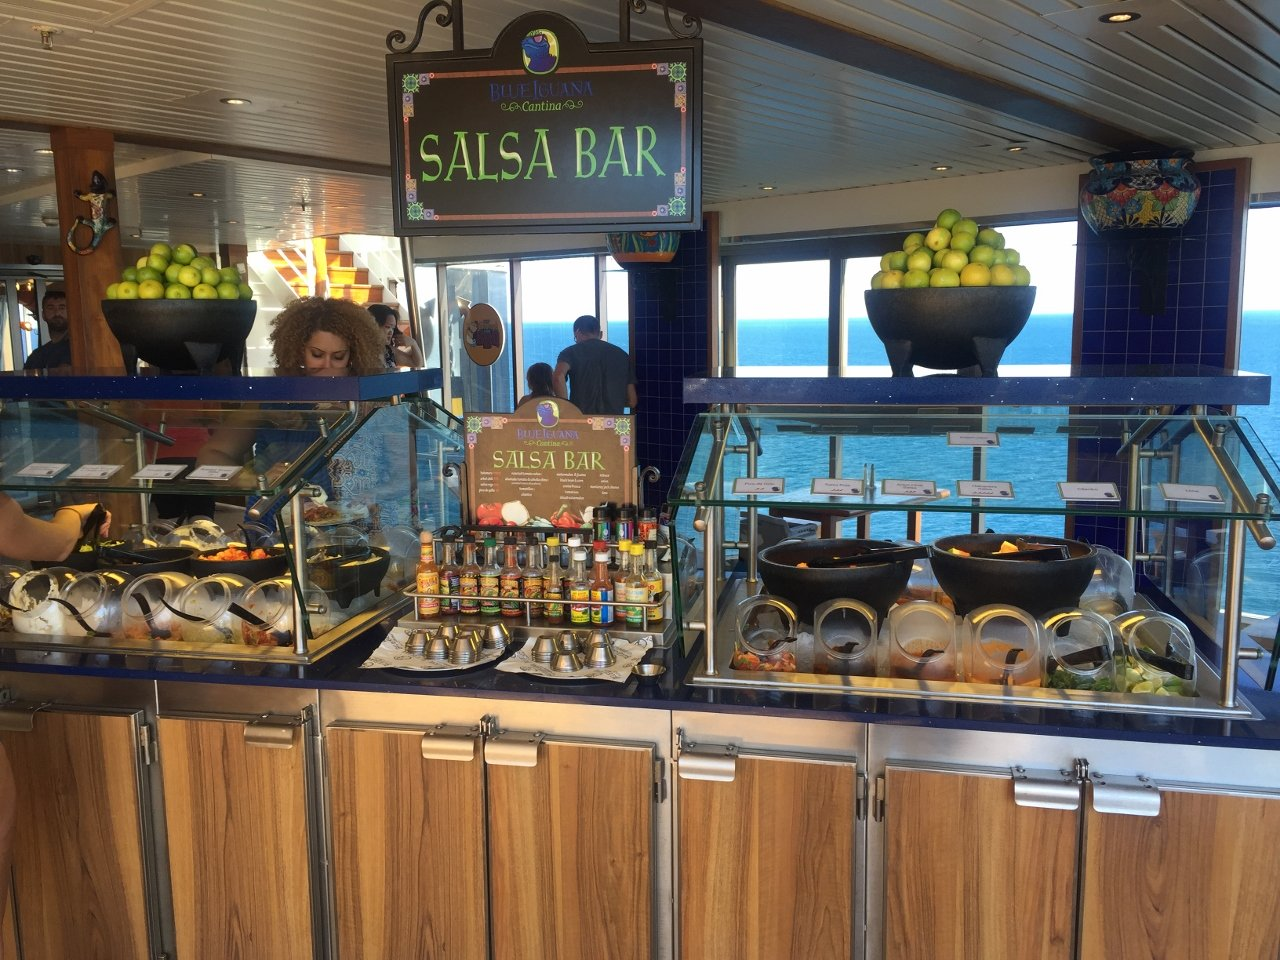 The Salsa Bar is always loaded with a wide range of freshly prepared ingredients, supplements and sauces.